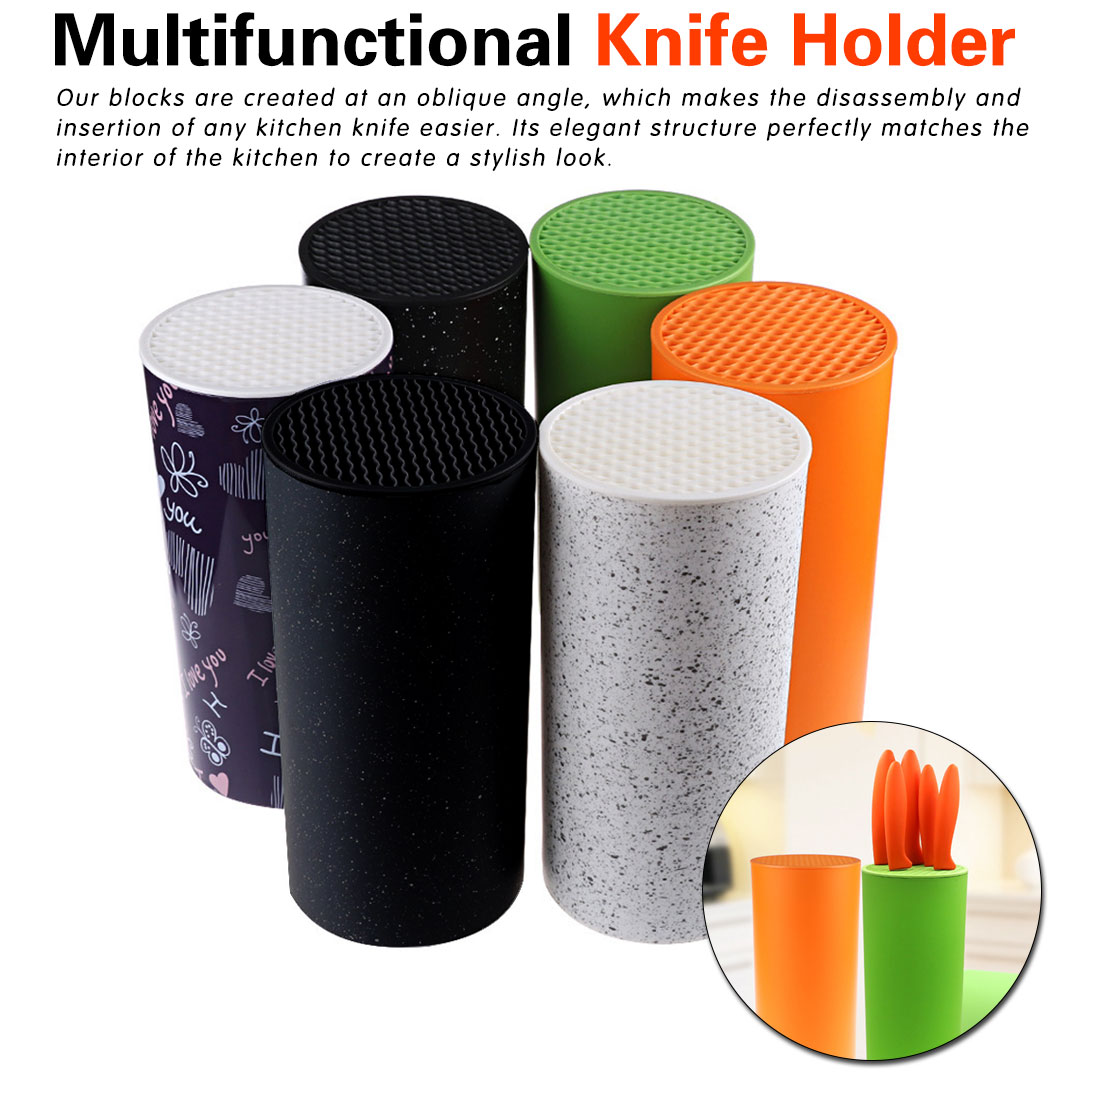 Insert Knife Multifunctional Plastic Tool Holder Knife Knife Stand Sooktops Tube Shelf Chromophous Scissors Holder